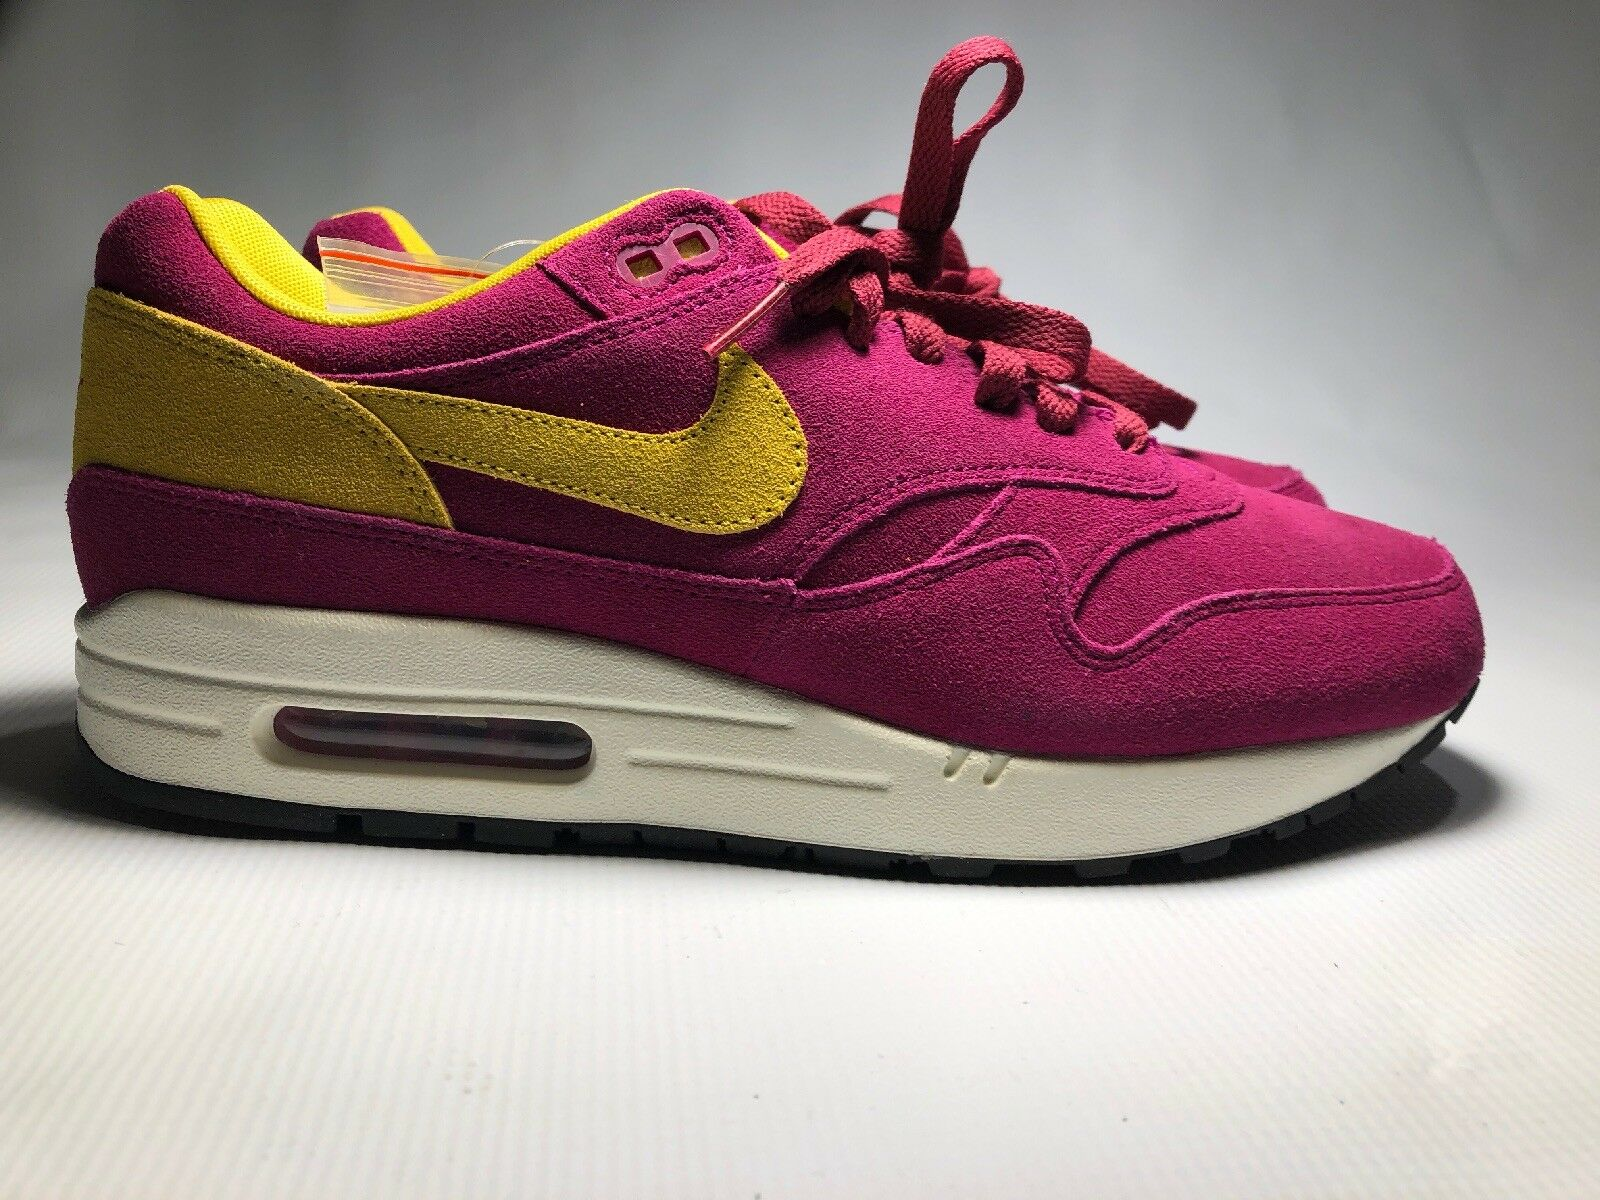 NIKE AIR MAX 1 PREMIUM DYNAMIC BERRY  30TH ANNIVERSARY   SZ 9.5   875844 500